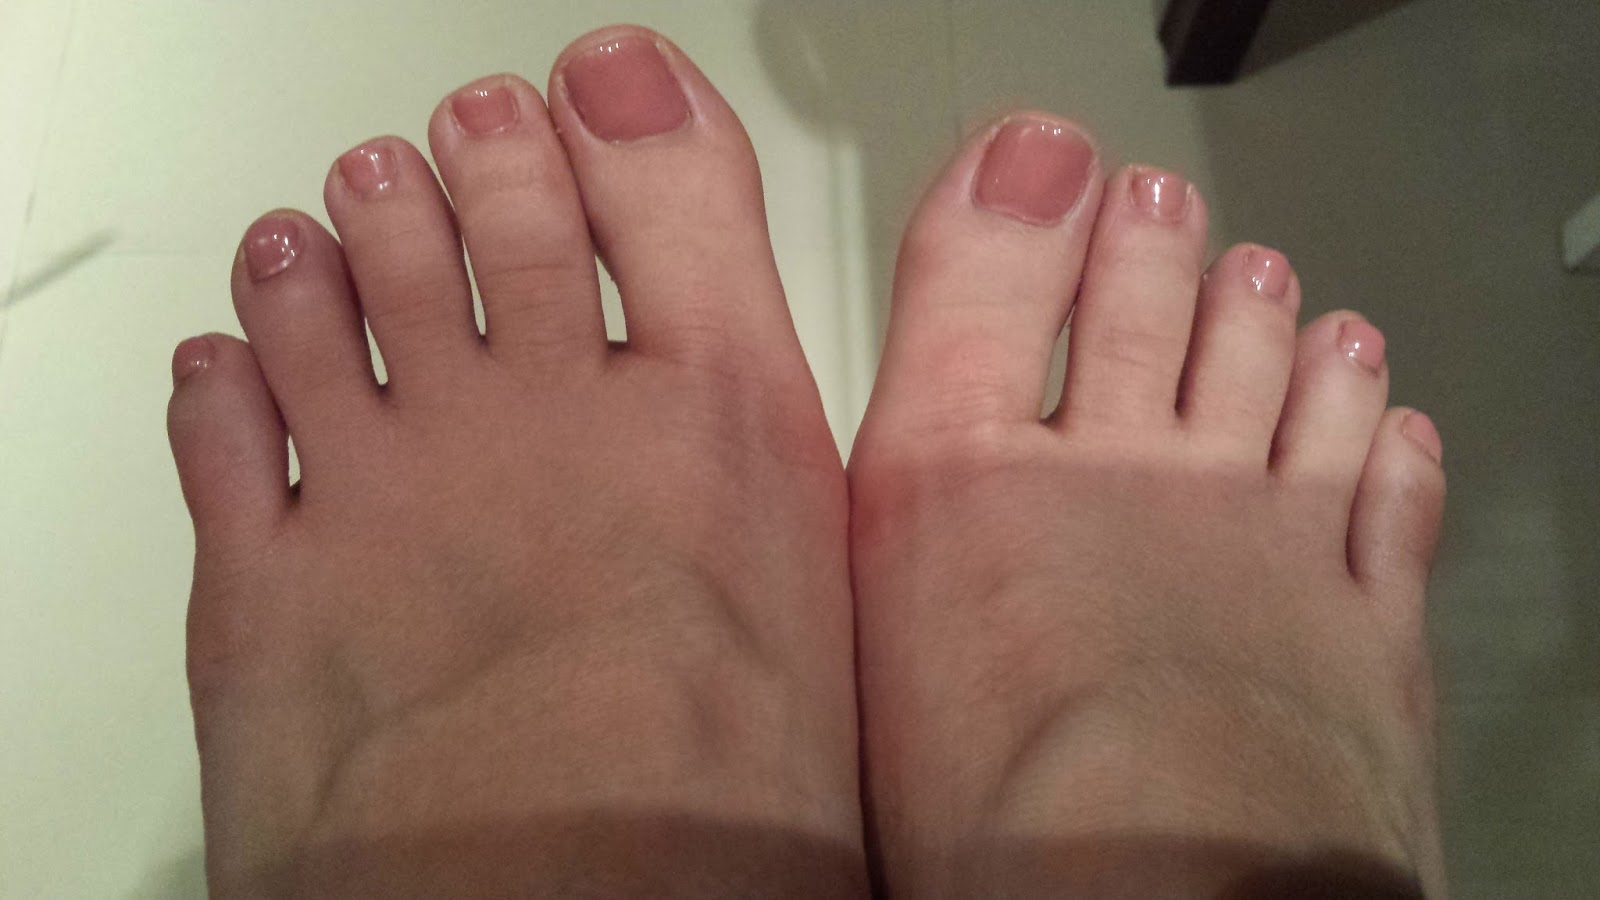 Allison Abroad: Blue Fingernails and Dusty Pink Toenails